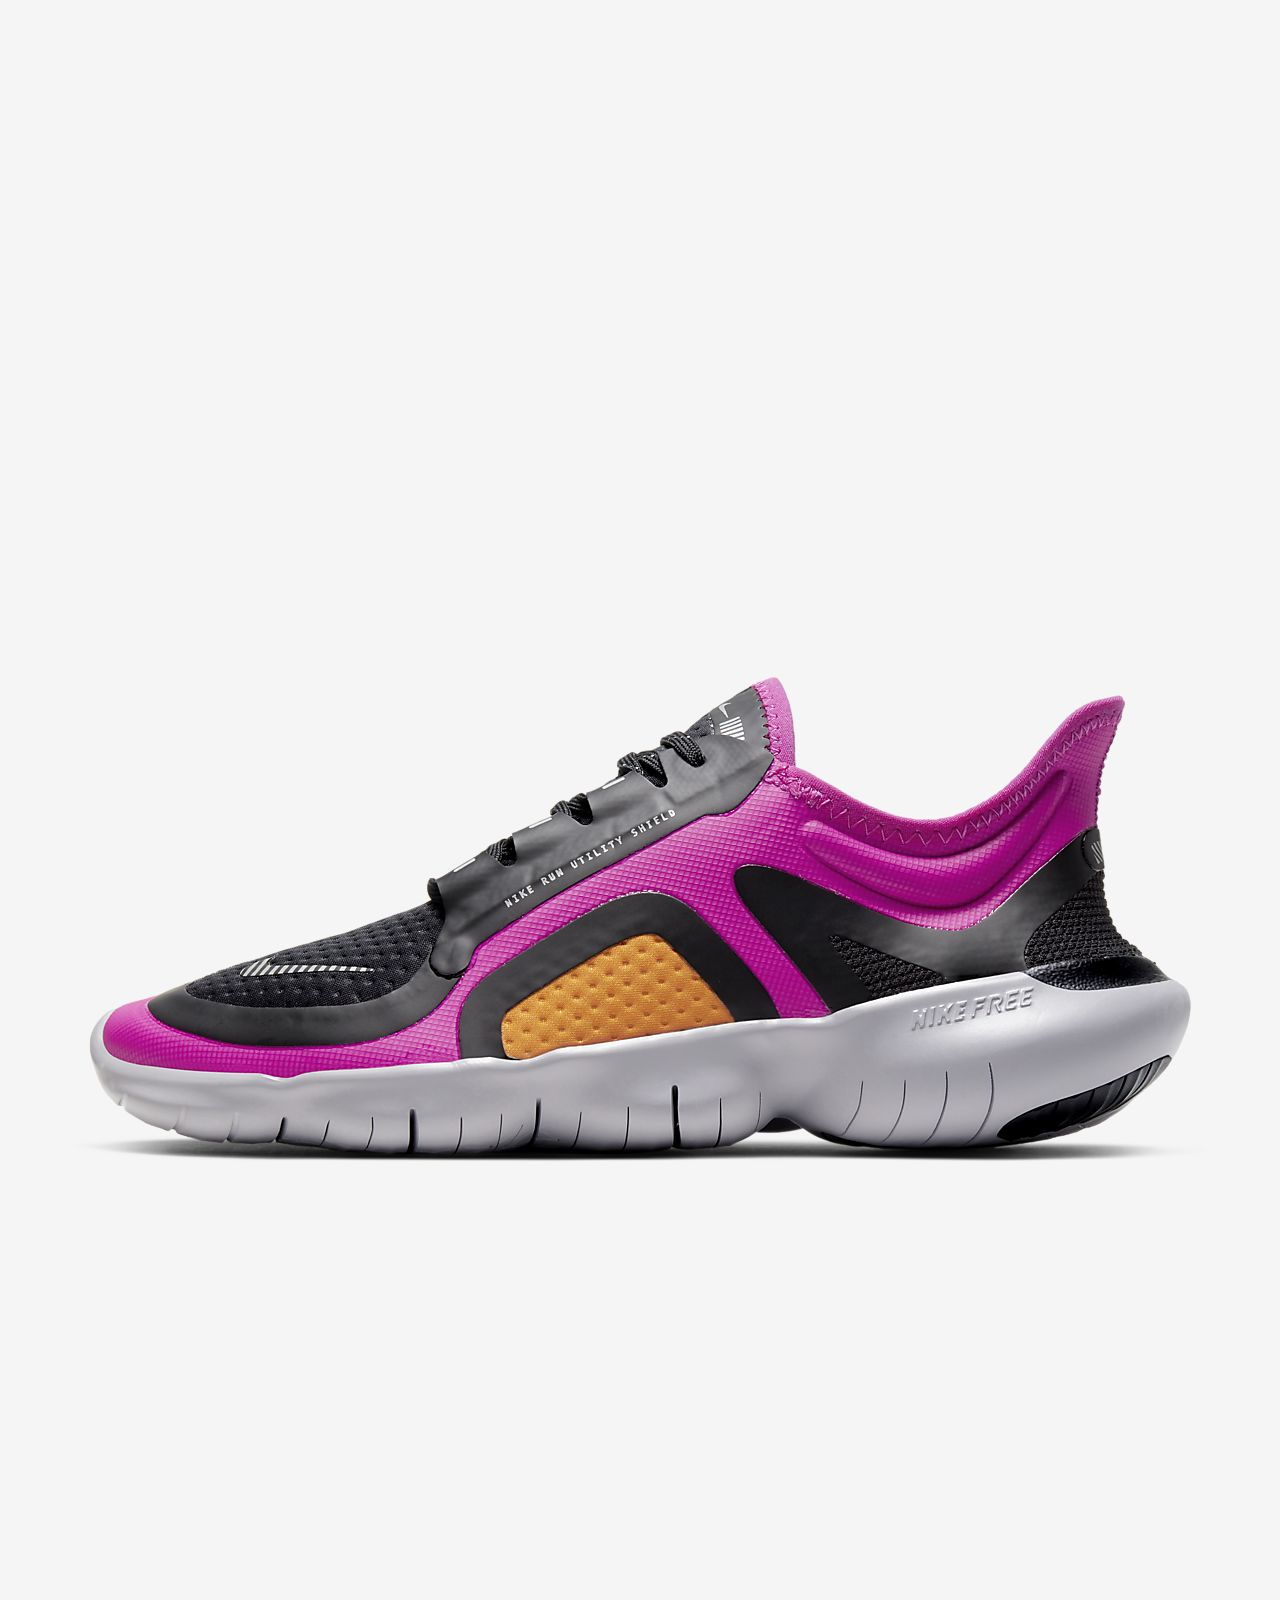 Chaussure de running Nike Free RN 5.0 Shield pour Femme